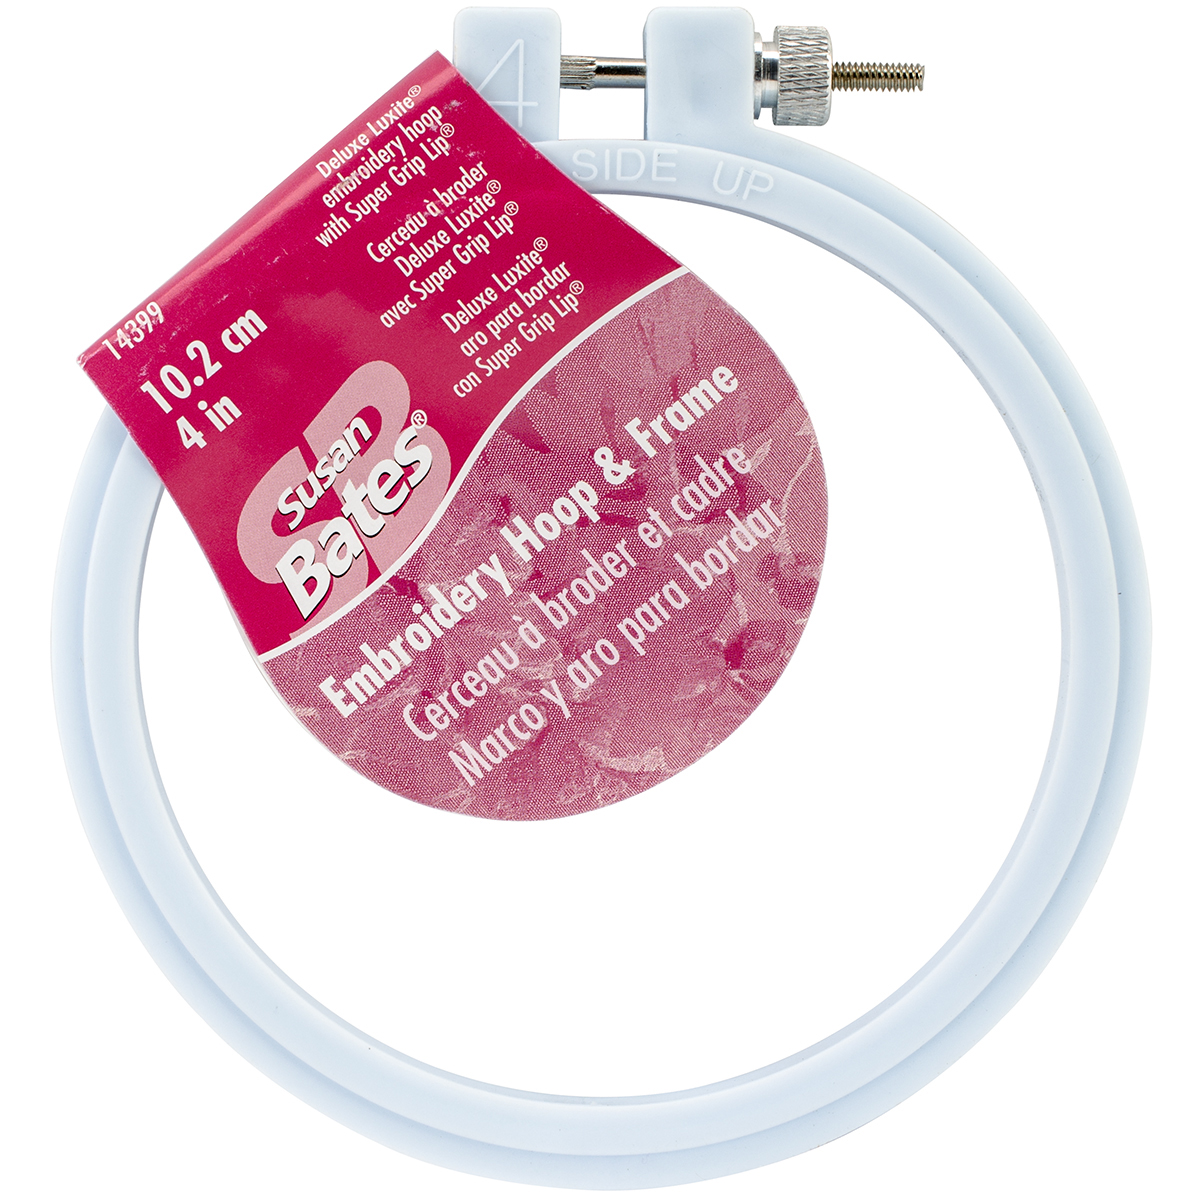 Bates Plastic Embroidery Hoop - Light Blue-Size 4""